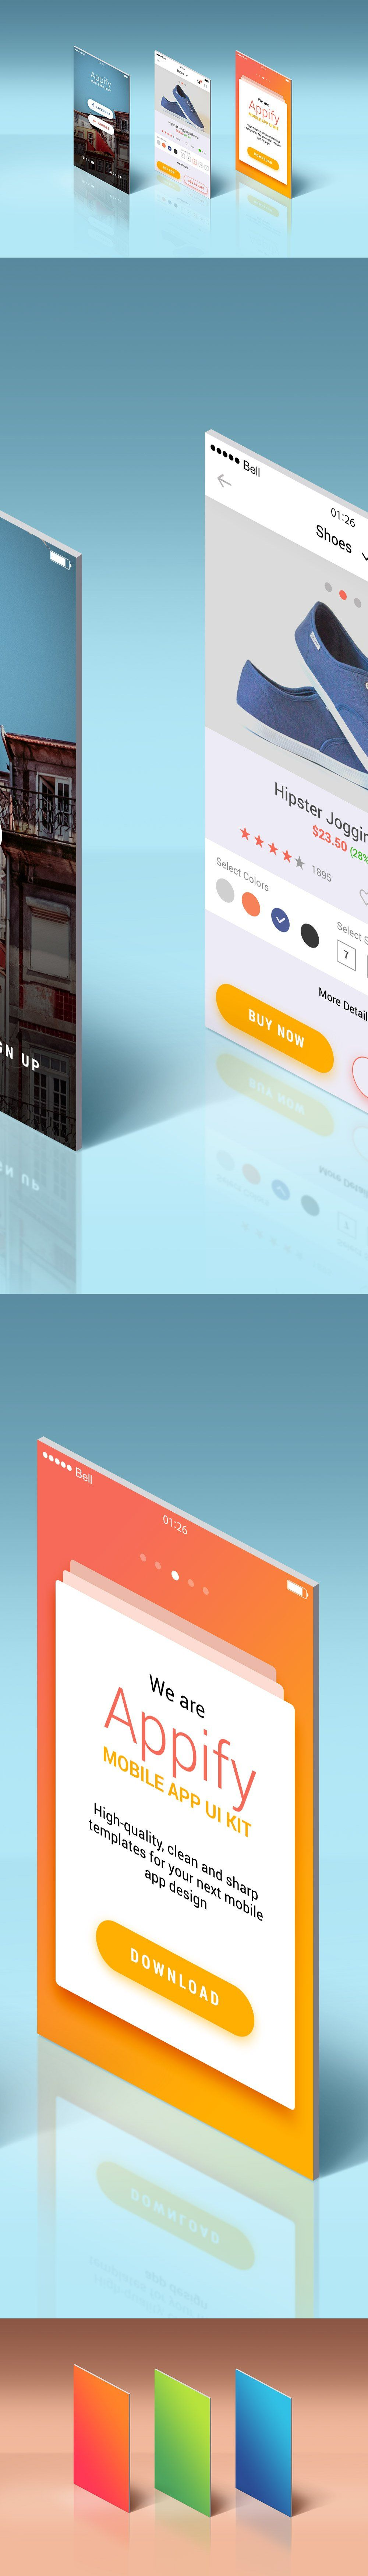 Featuring the inspiring free psd mockup of app screens